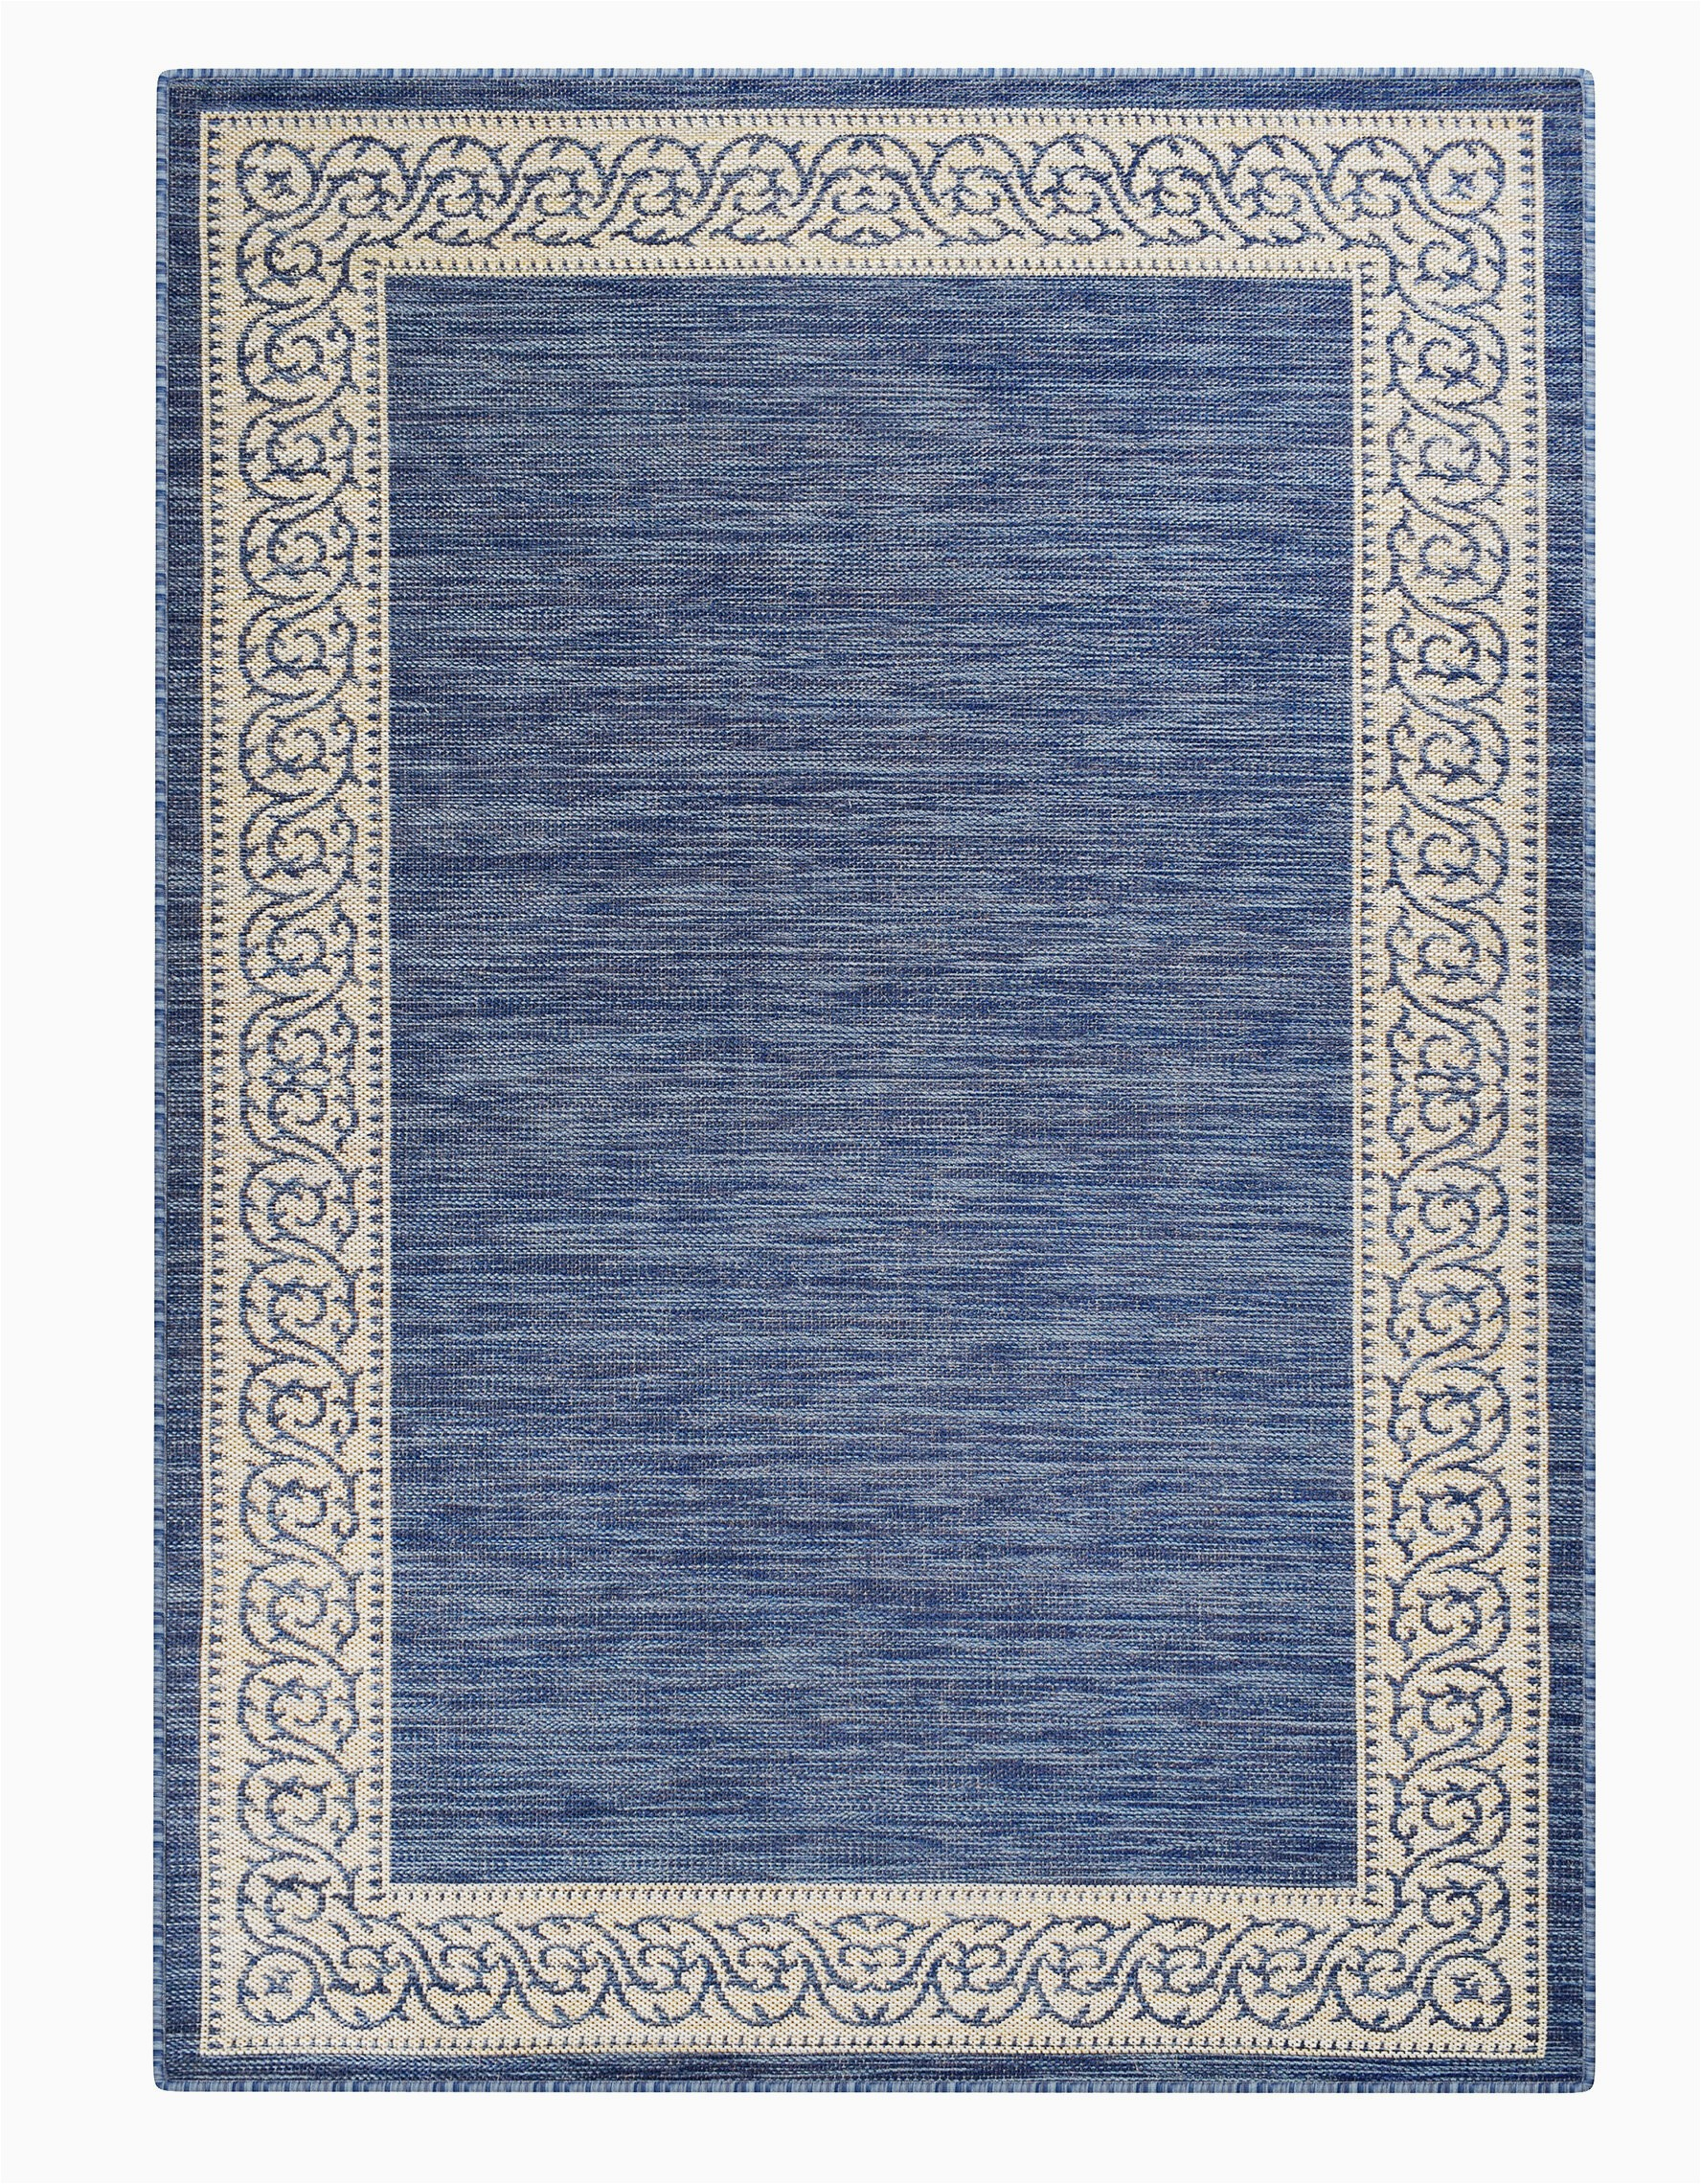 charlton home meyerwood floral shag 5 x 77 denim blue indoor outdoor area rug c